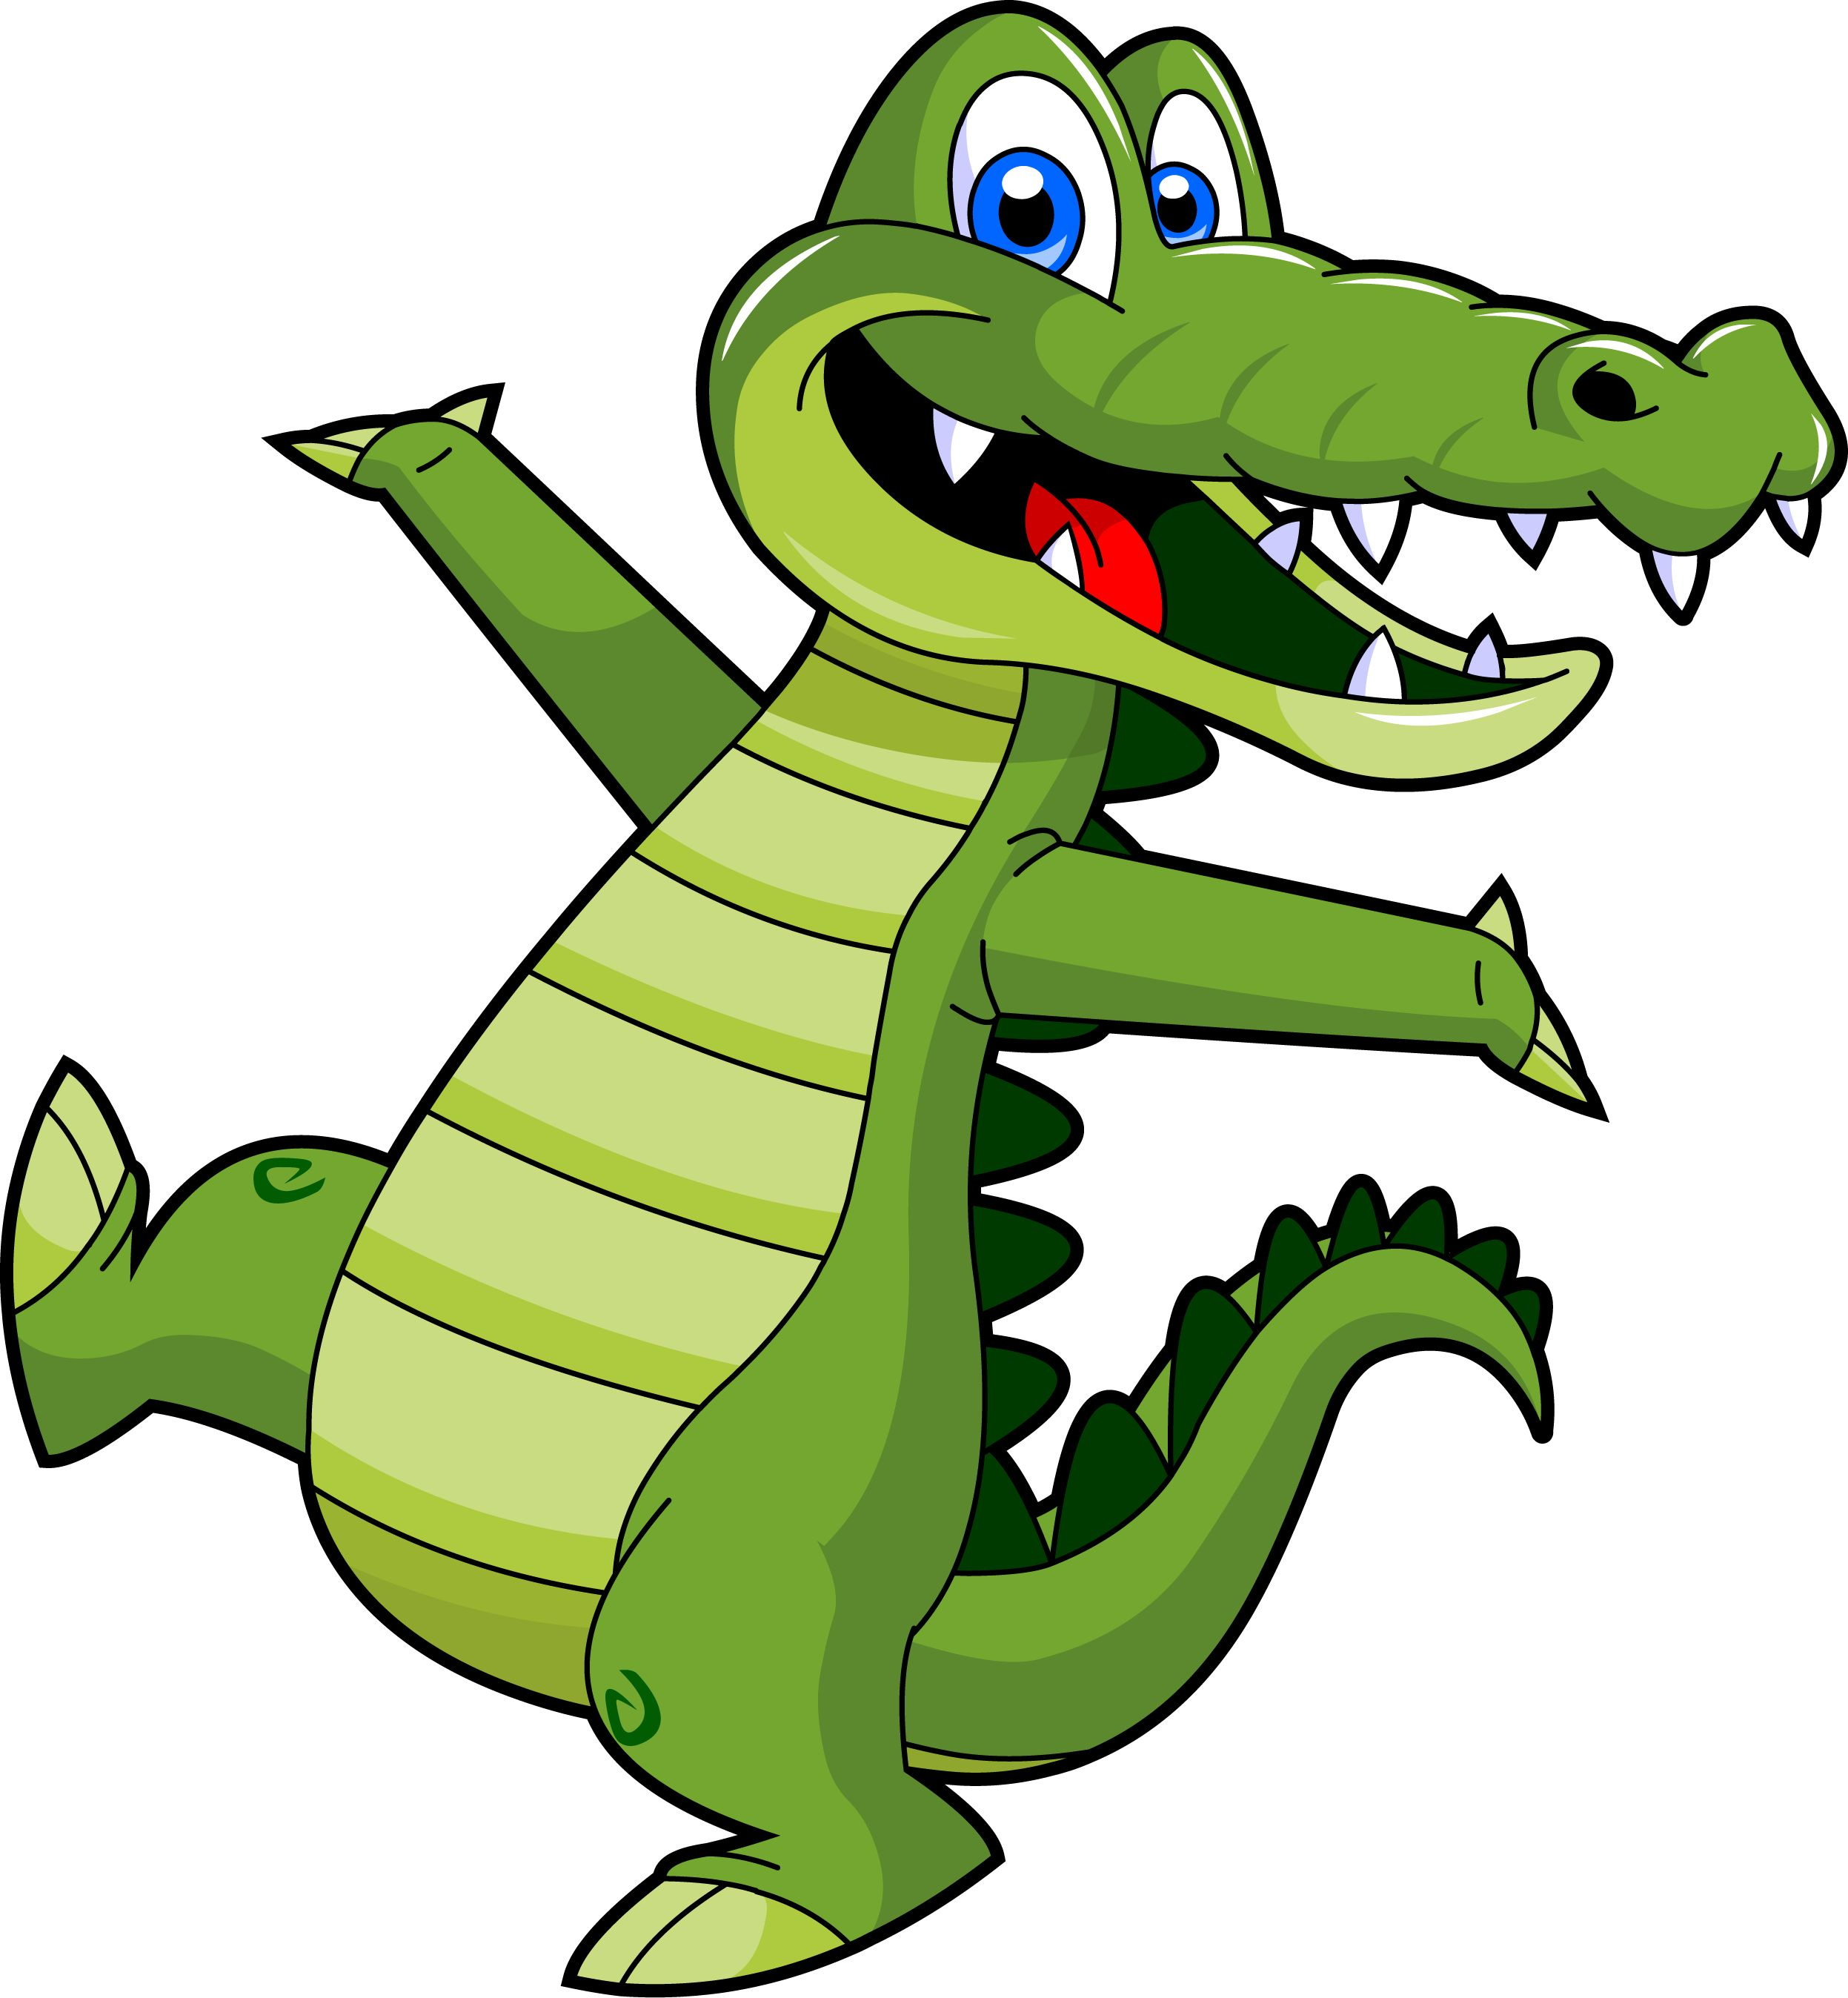 Sick clipart crocodile #15